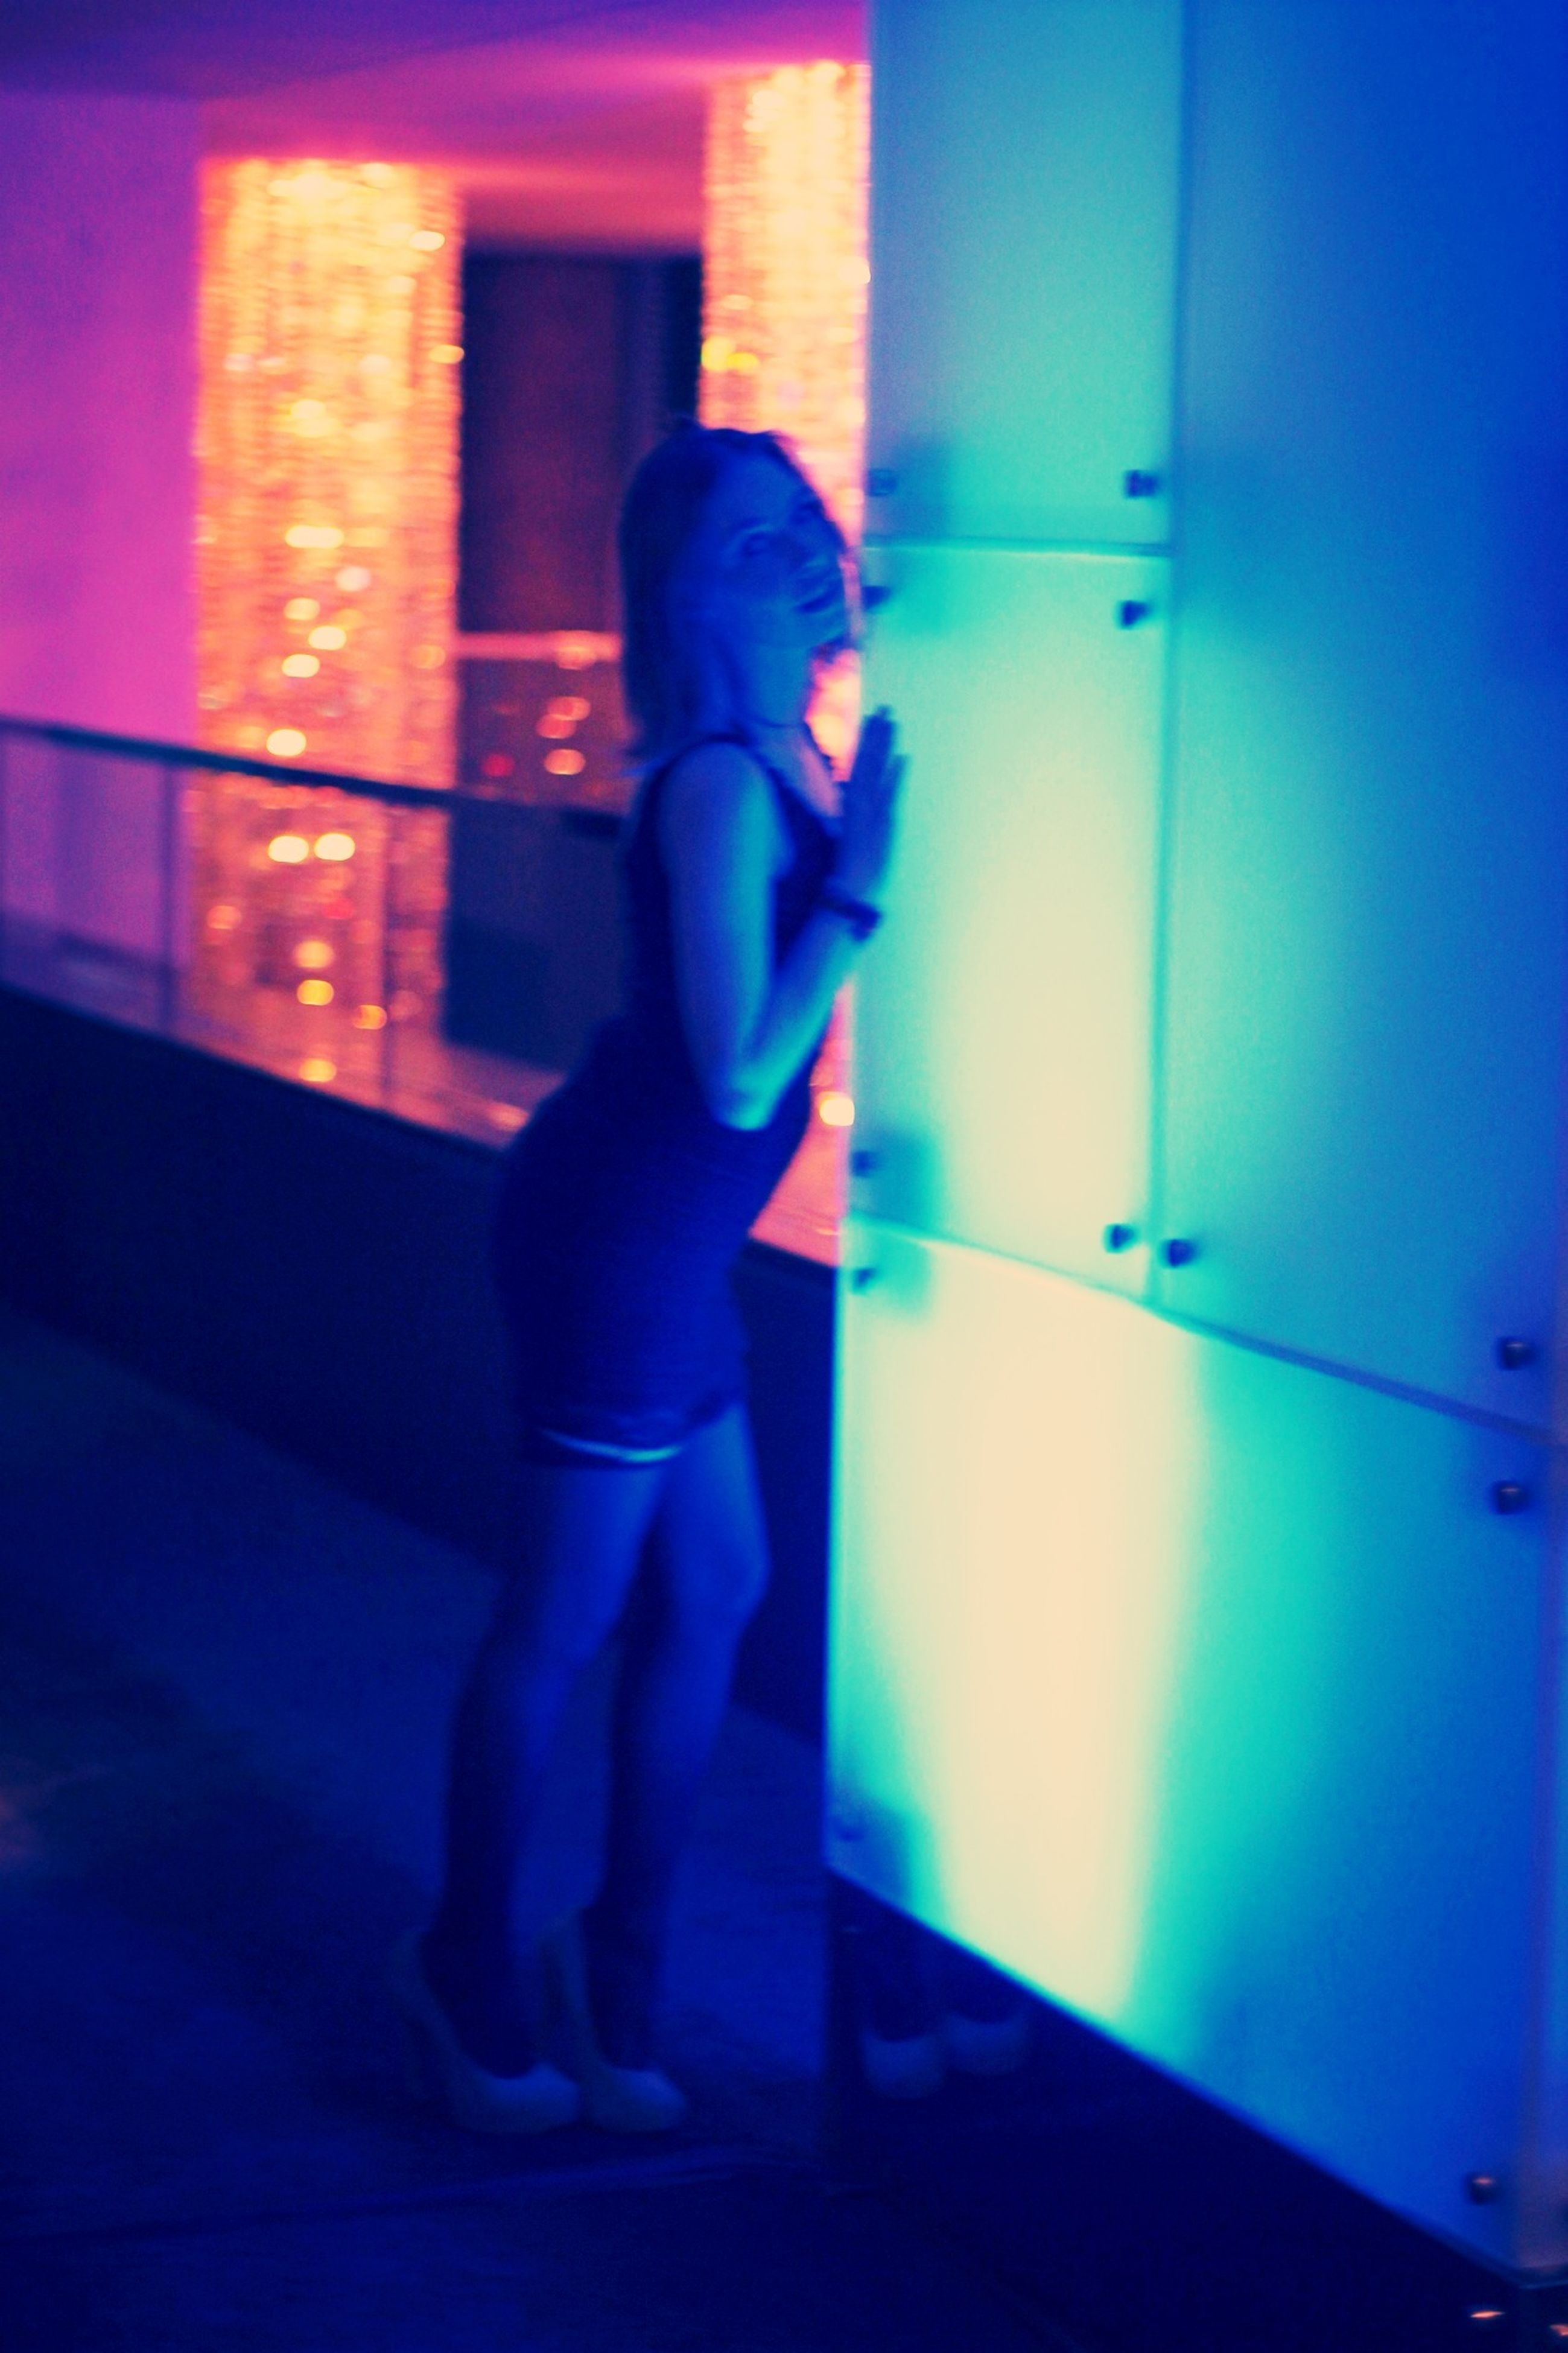 indoors, full length, lifestyles, rear view, illuminated, men, standing, night, casual clothing, leisure activity, walking, built structure, architecture, blue, silhouette, person, side view